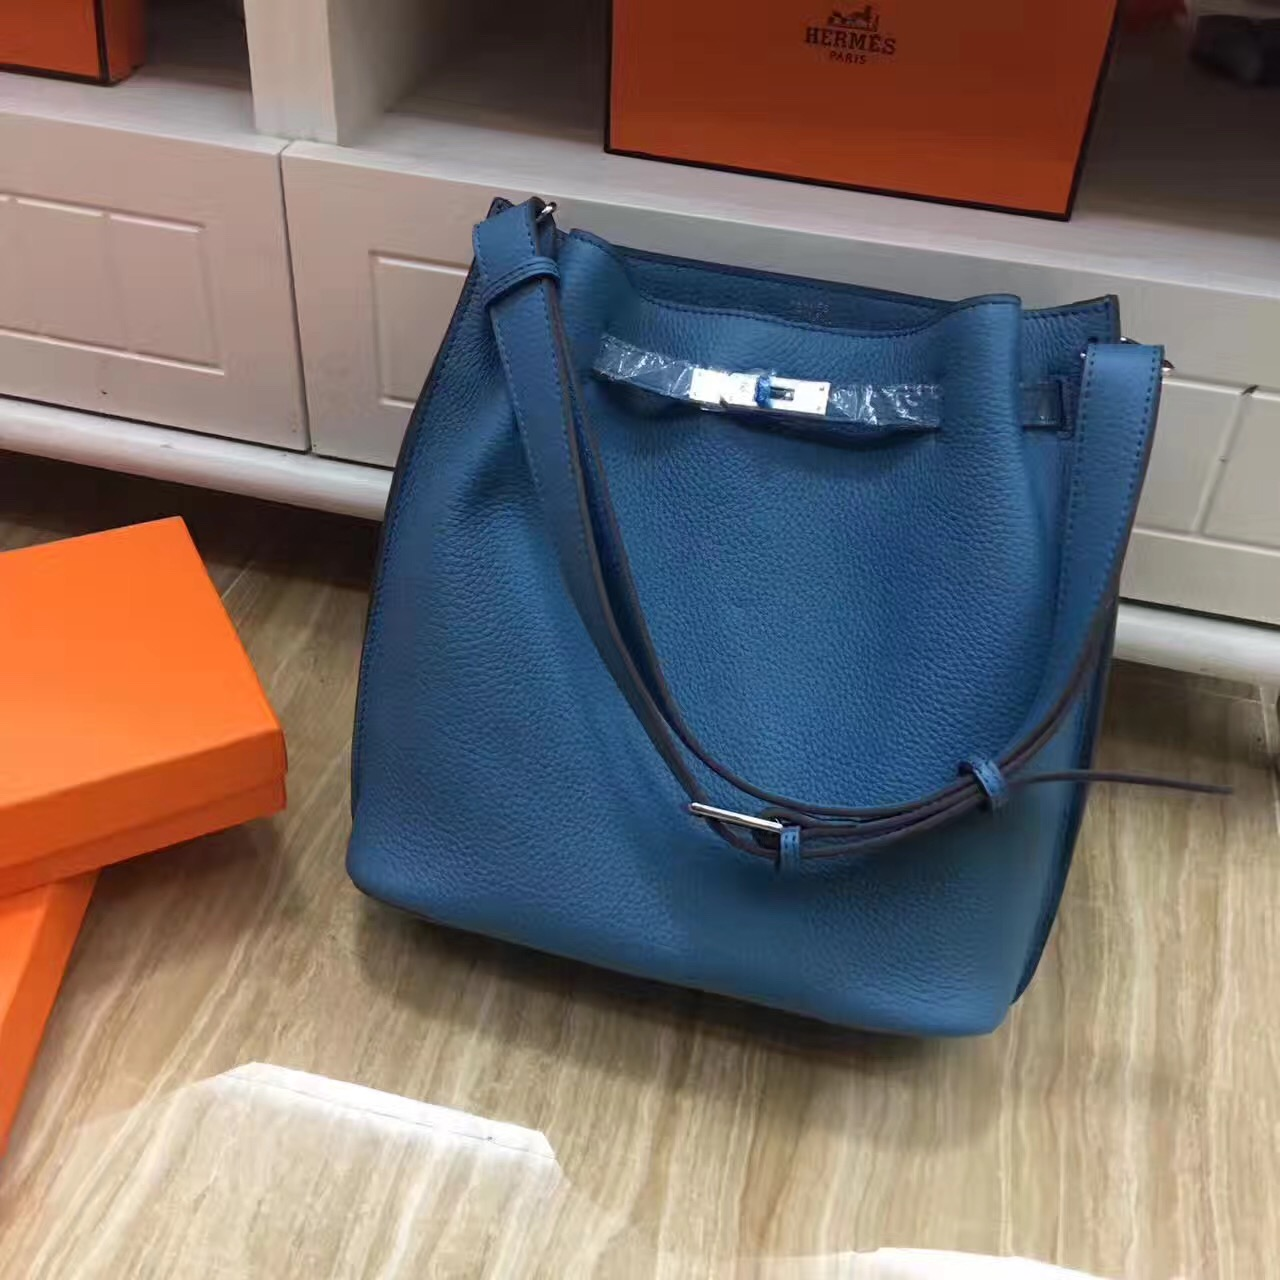 Hermes So Kelly 28cm Togo Leather Shoulder Bag Blue Silver